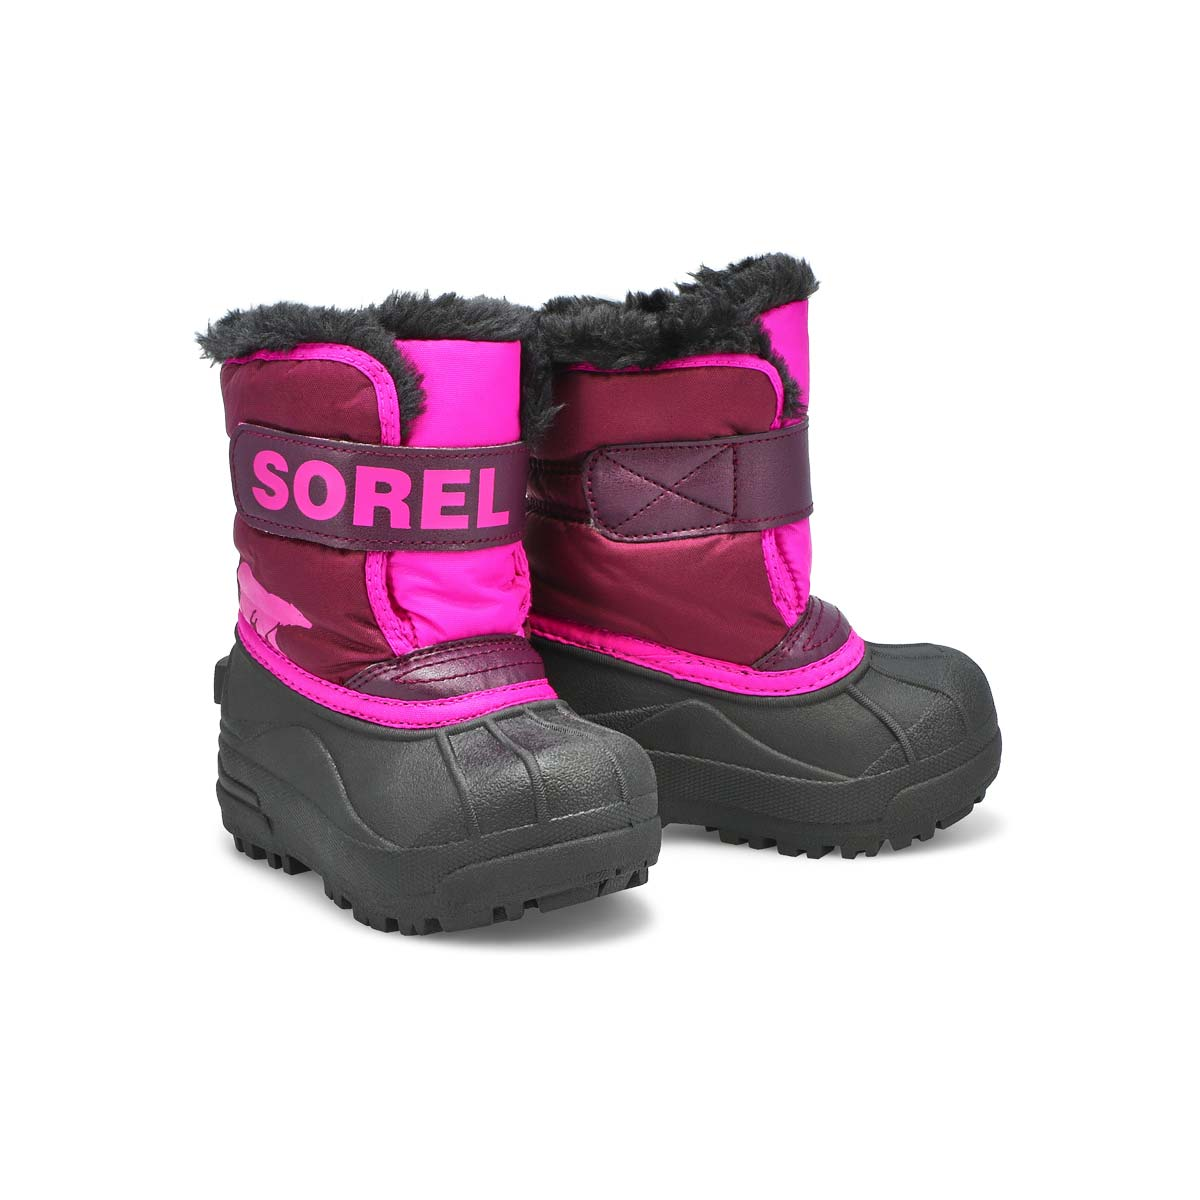 Infs-g Snow Commander pur/pnk boot